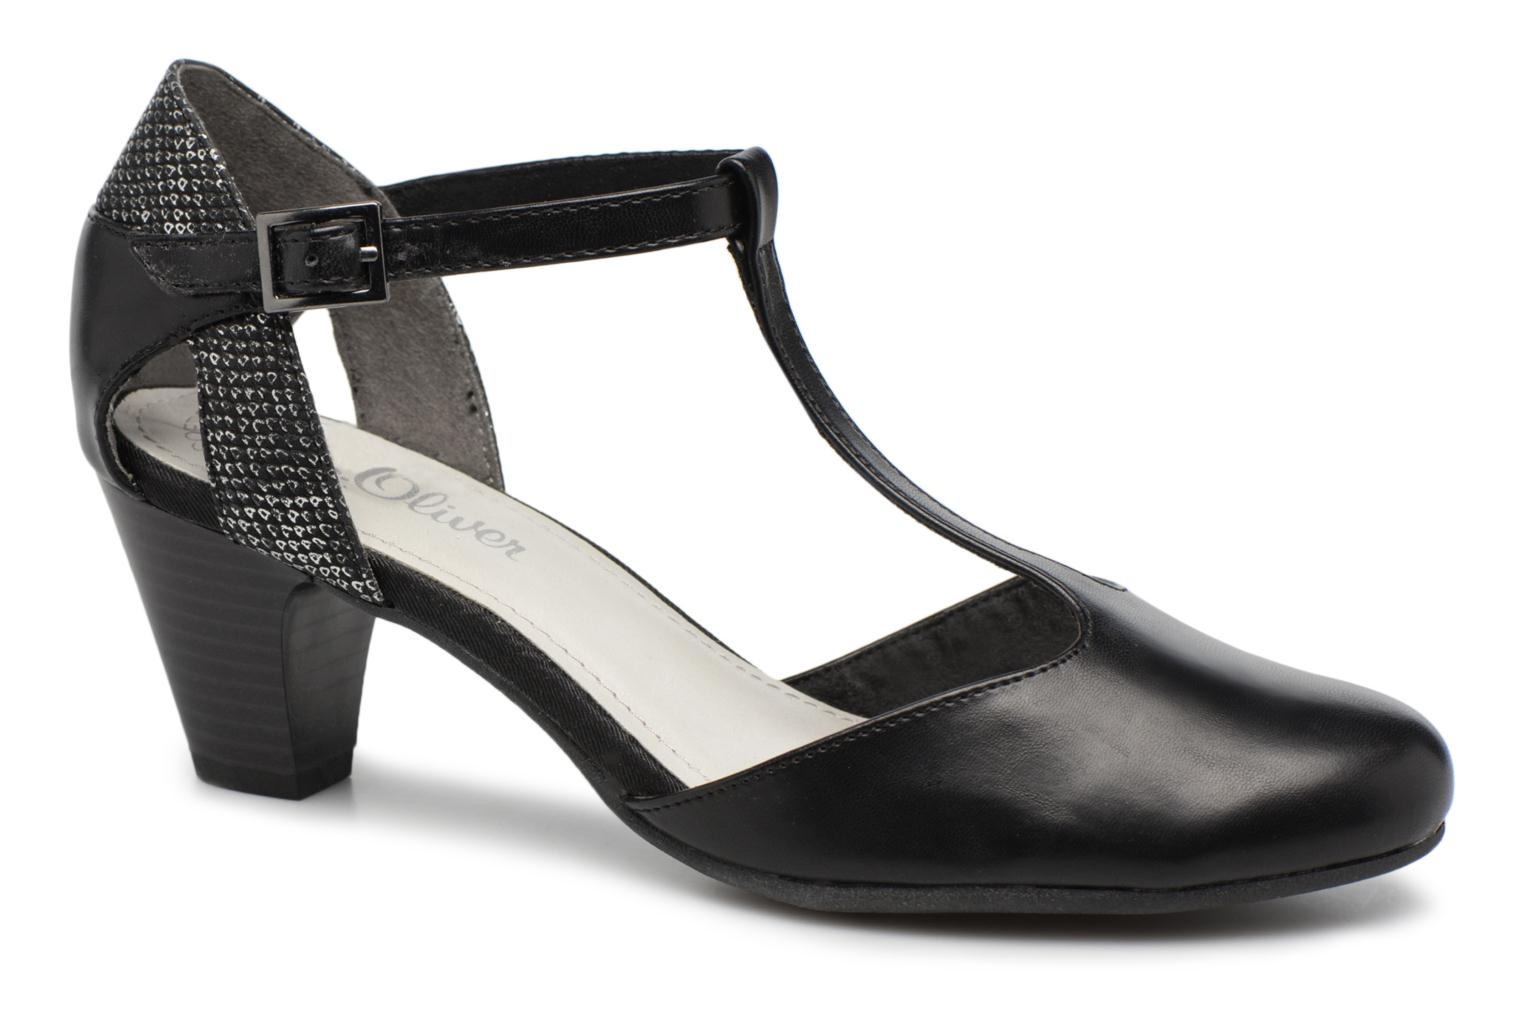 Pumps Danoa by S.Oliver